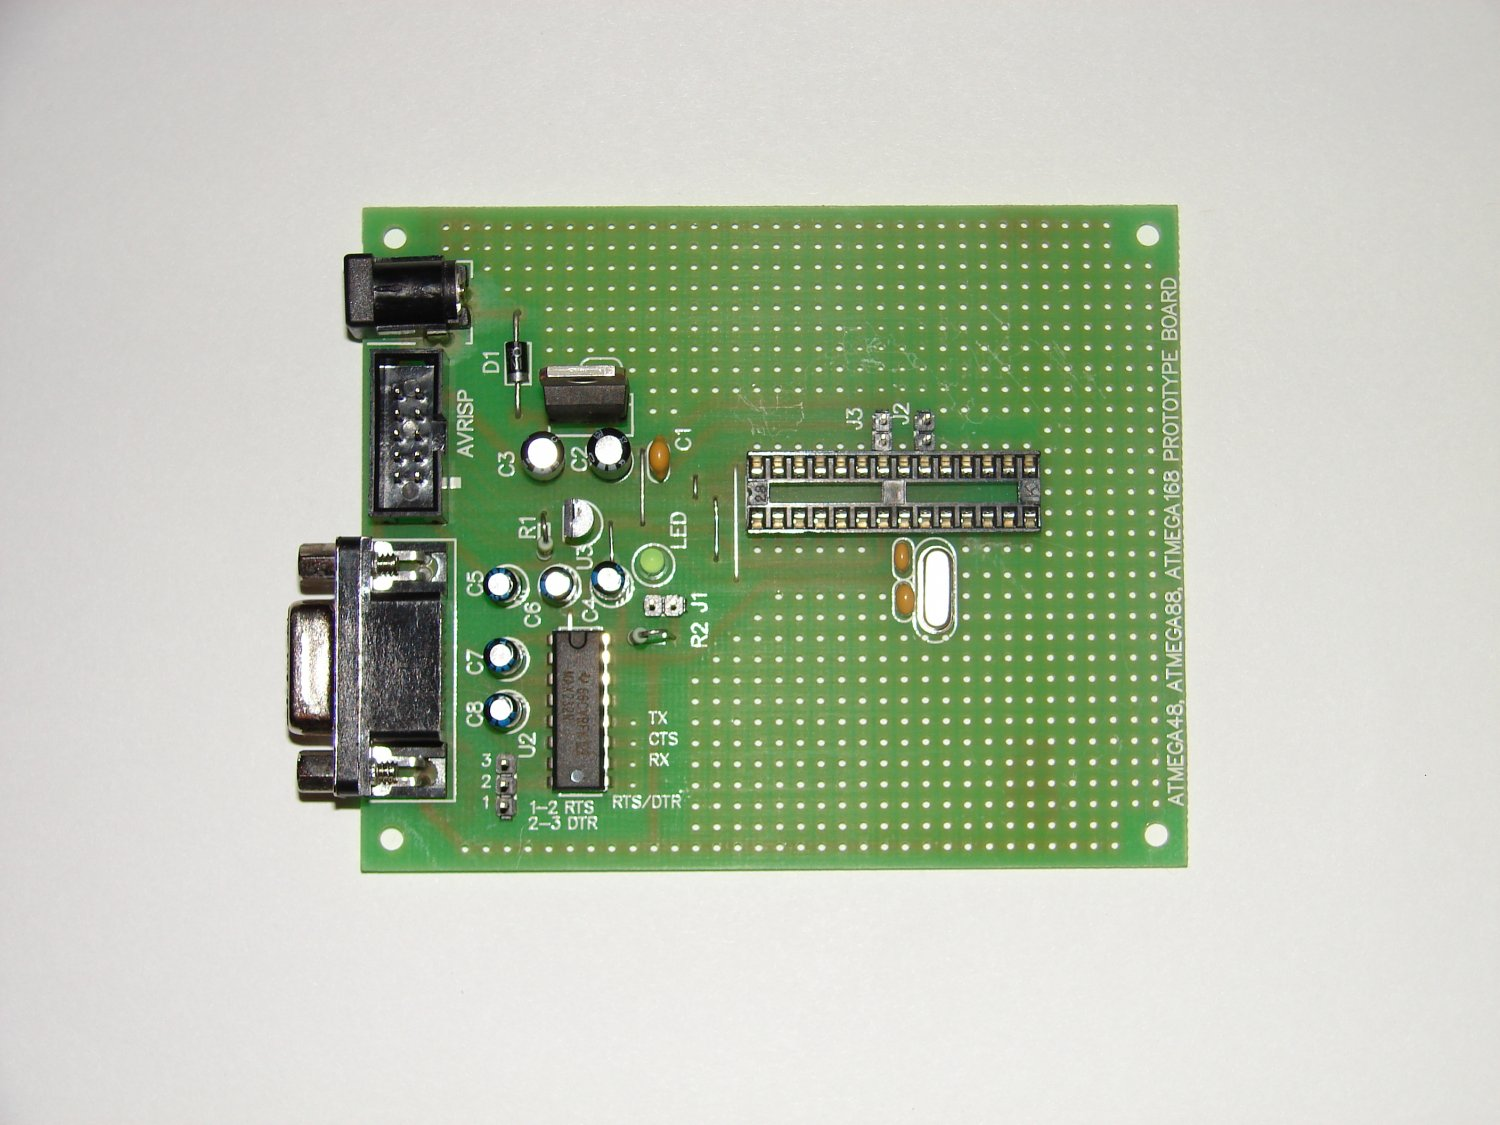 ATMEL AVR PROTOTYPE BOARD ATMega8 (88) with components